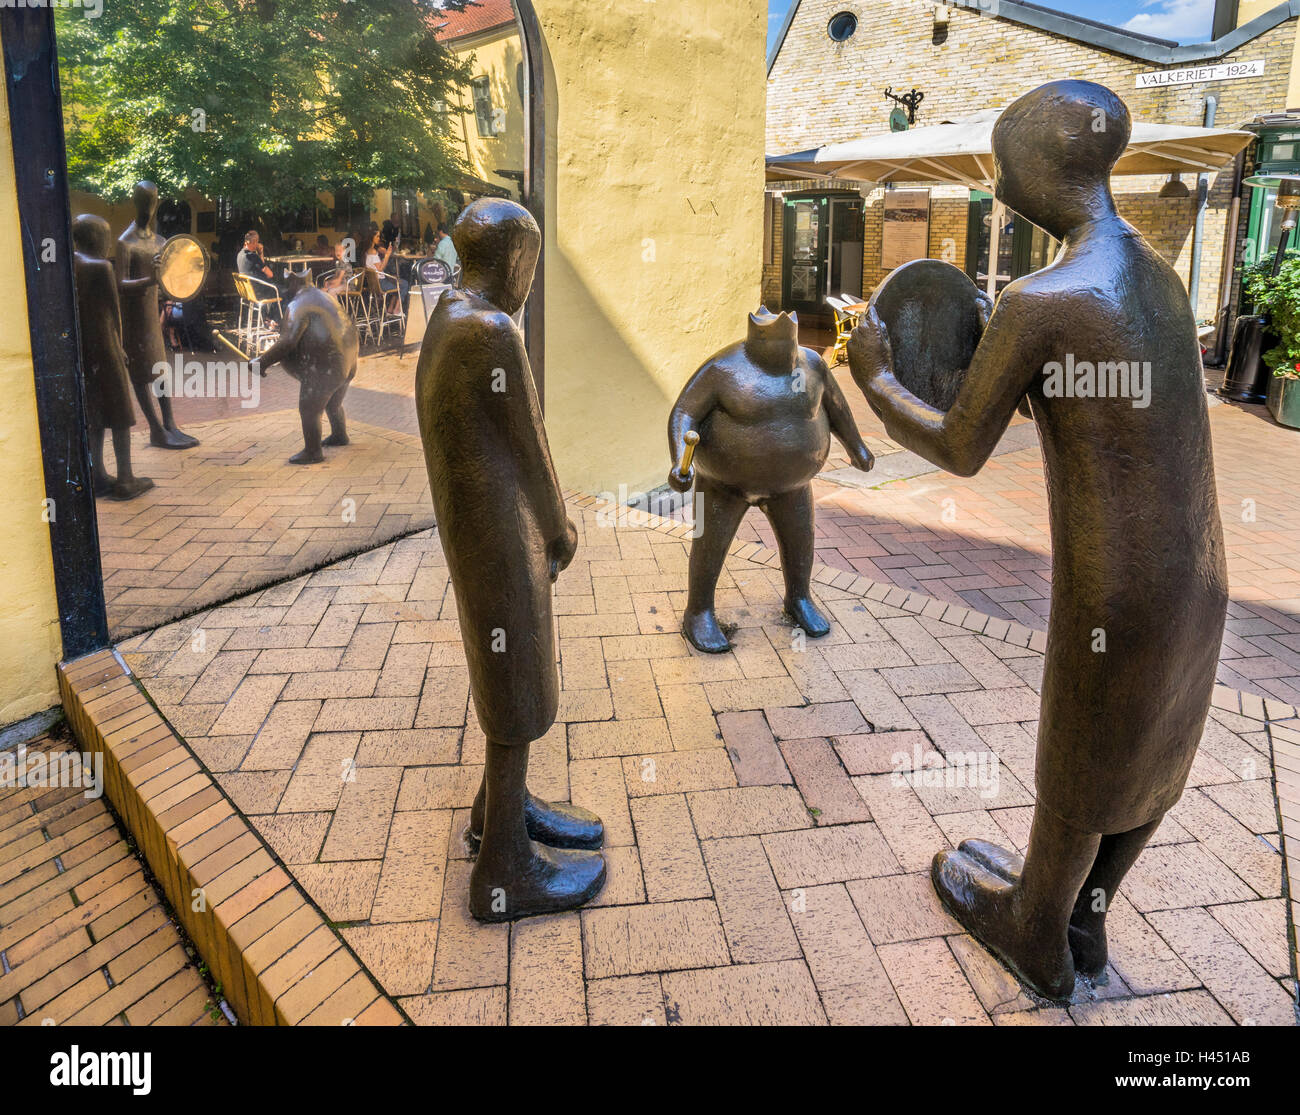 Denmark, Funen, Odense, bronce sculpture group titled 'The Emperor's New Clothes' by Keld Moseholm Jorgensen - Stock Image